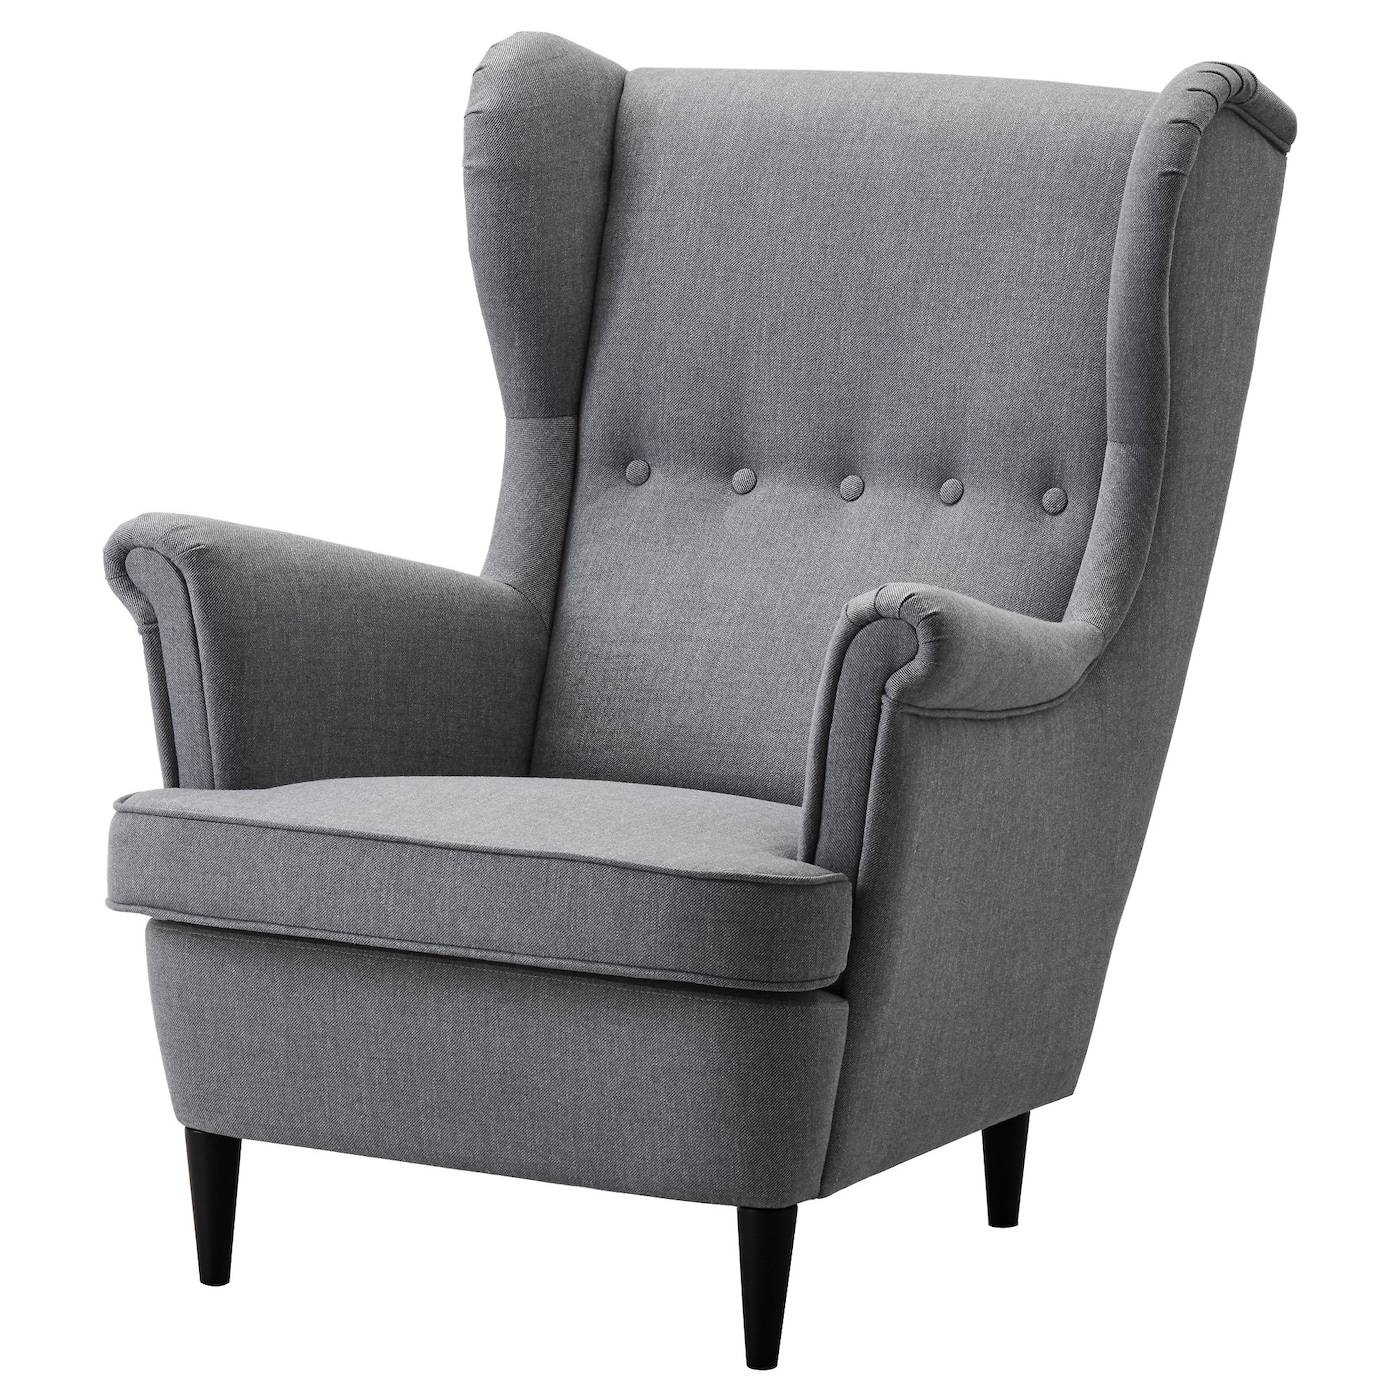 Ikea Strandmon Wing Chair 10 Year Guarantee Read About The Terms In Brochure